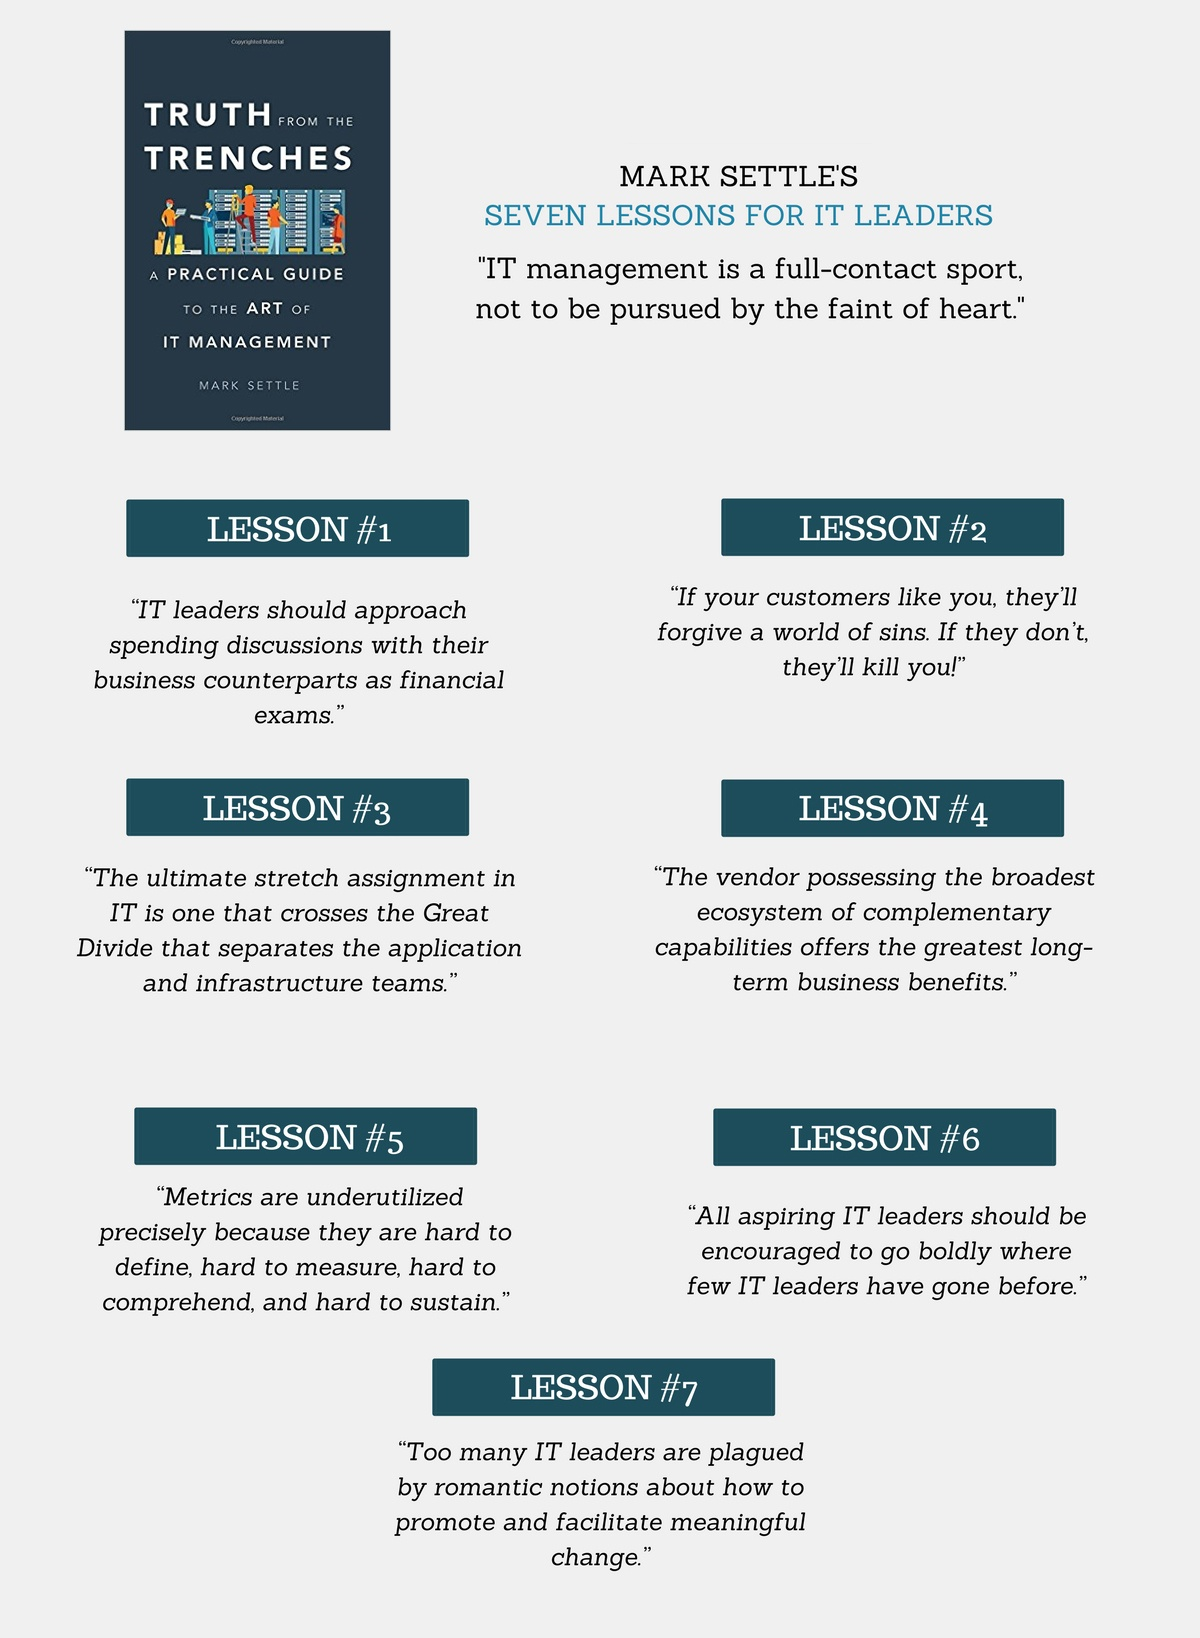 Seven Lessons For IT Leaders